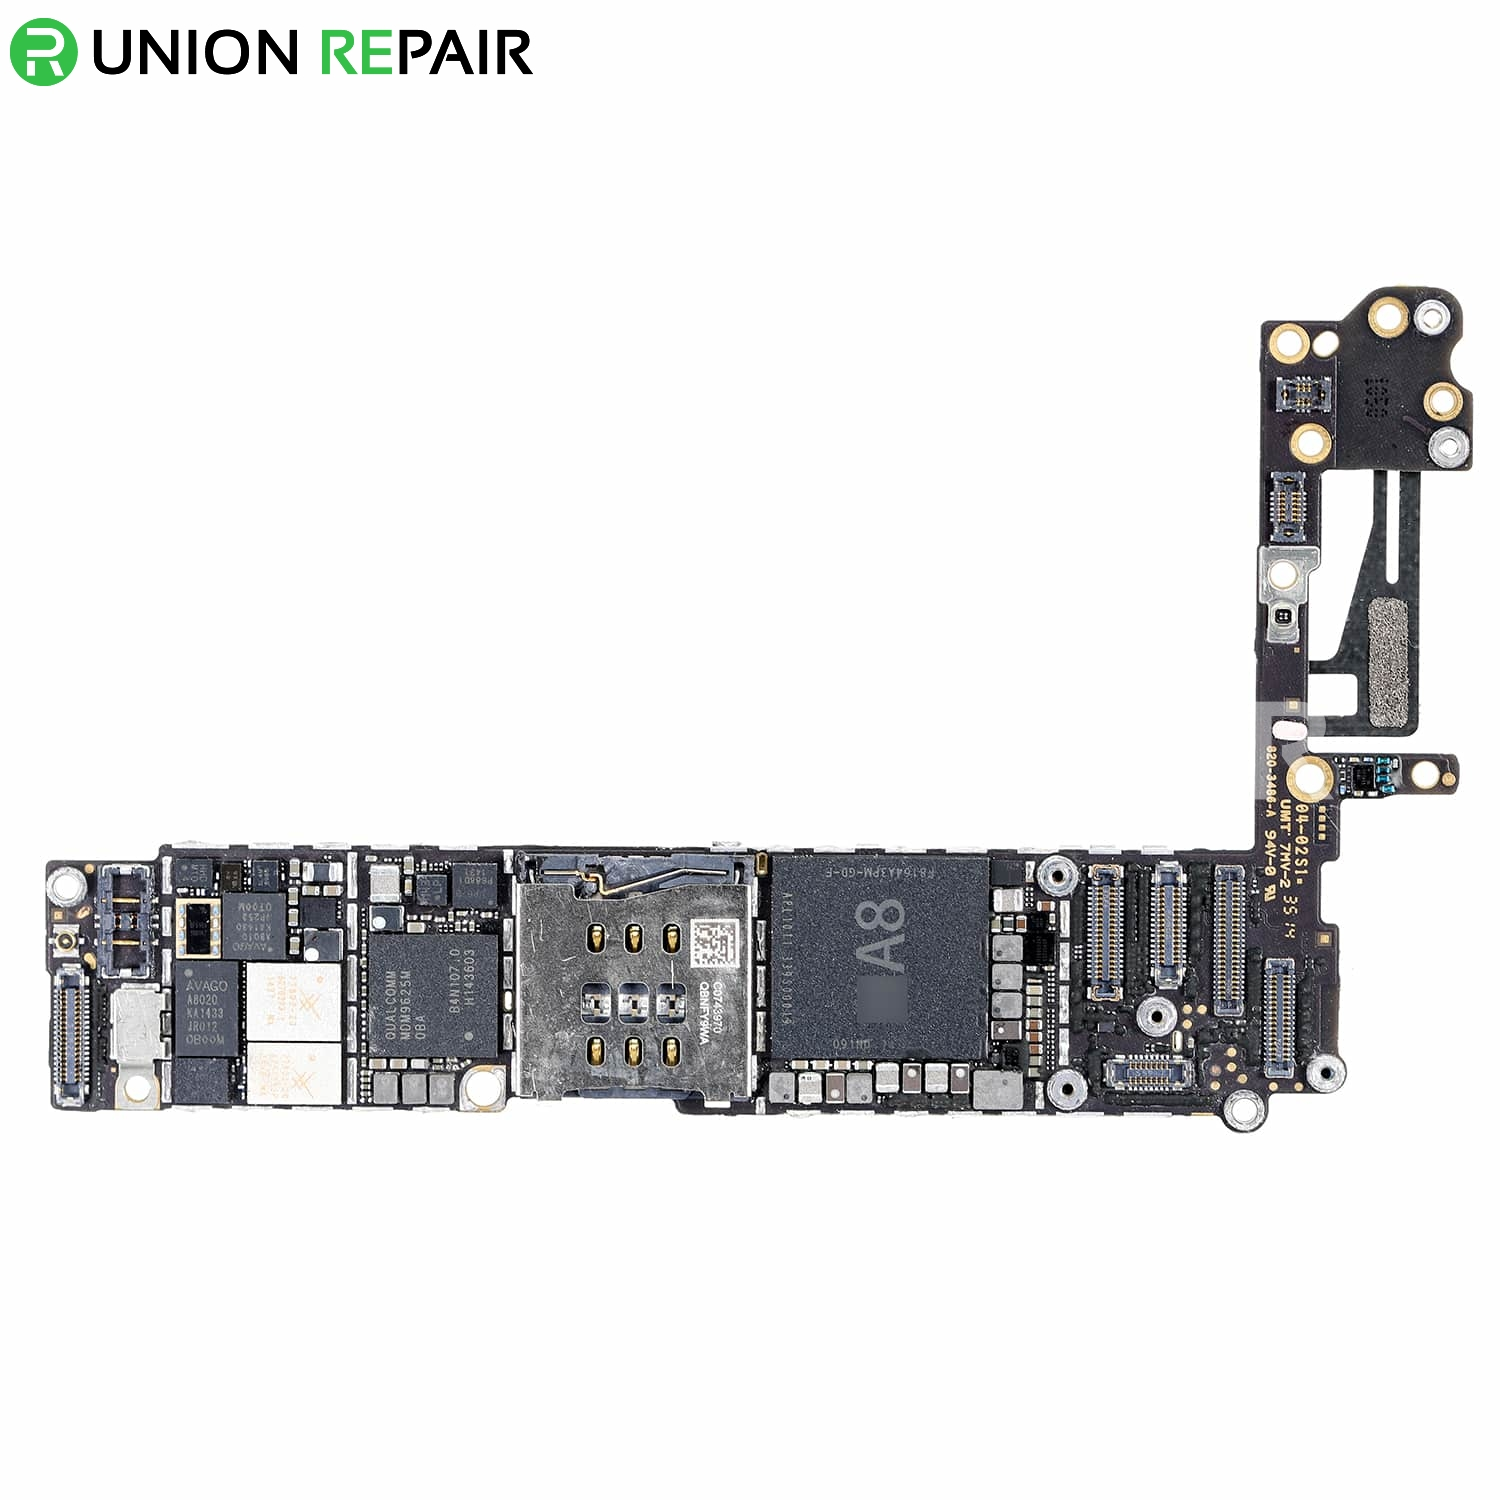 Broken Practice Board for iPhone Repair without Nand (5PCS/Set), Type: For iPhone 6G